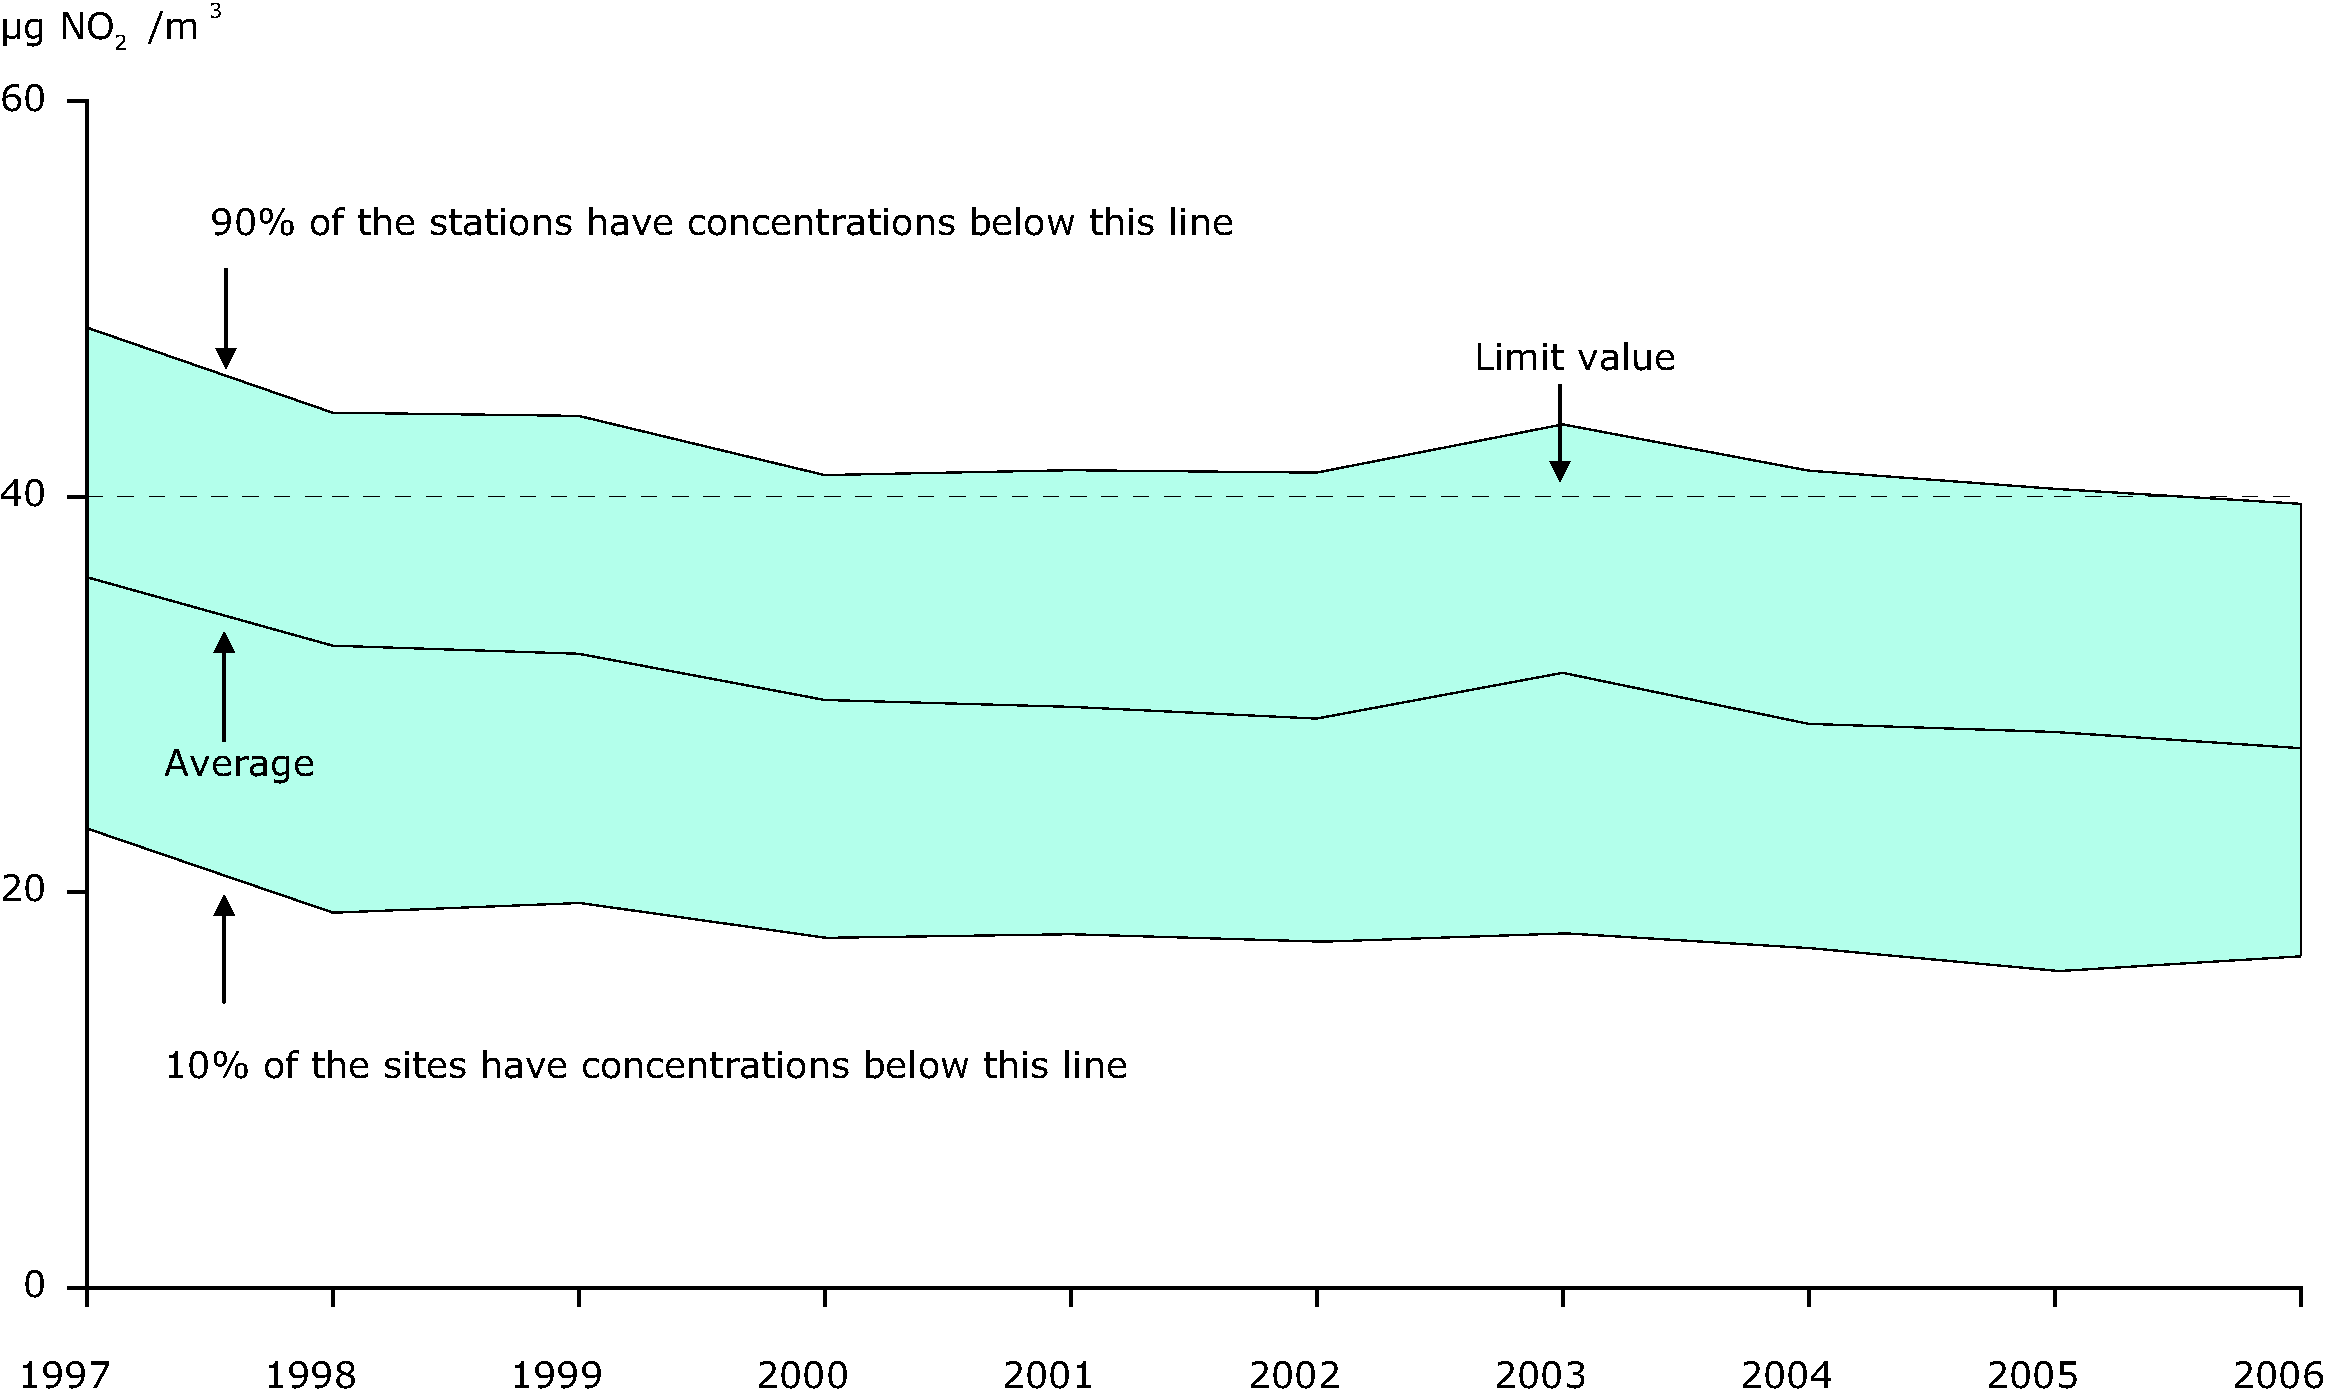 Annual mean NO2 concentration averaged through available urban background stations, EEA member countries, 1997-2006